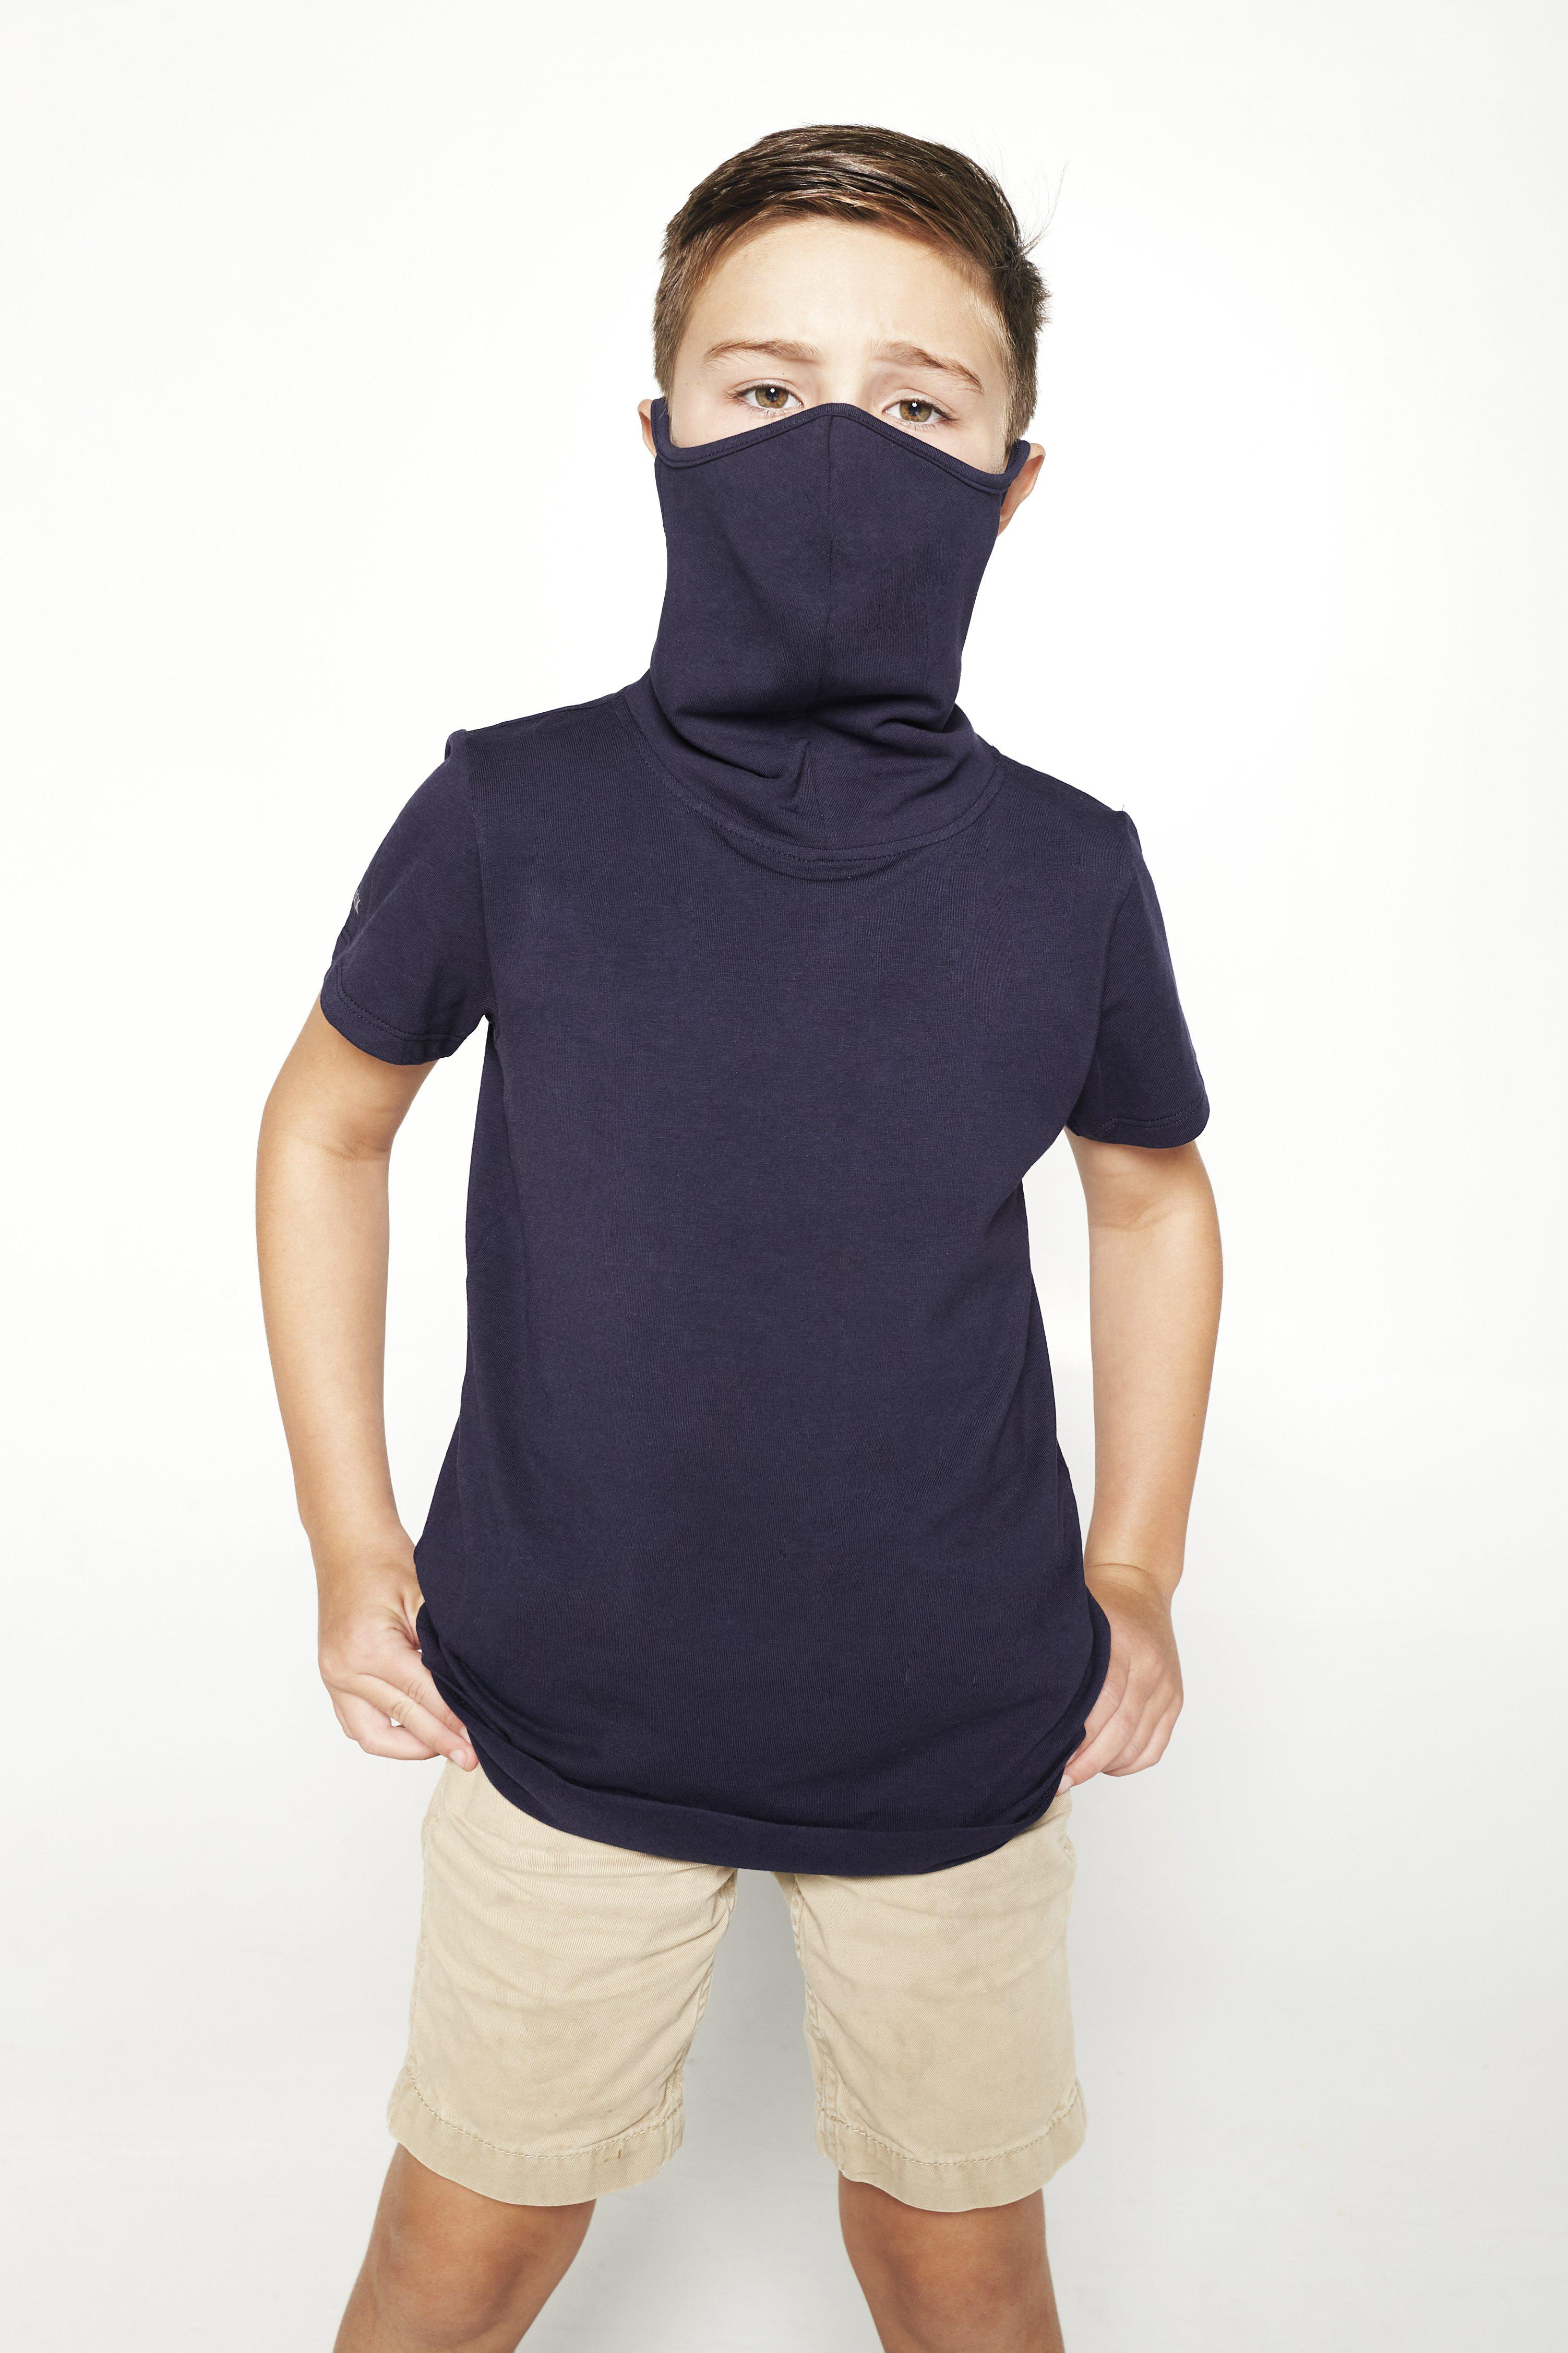 Kids Short Sleeve Navy Shmask™ Earloop Face Mask for Kids and Adults